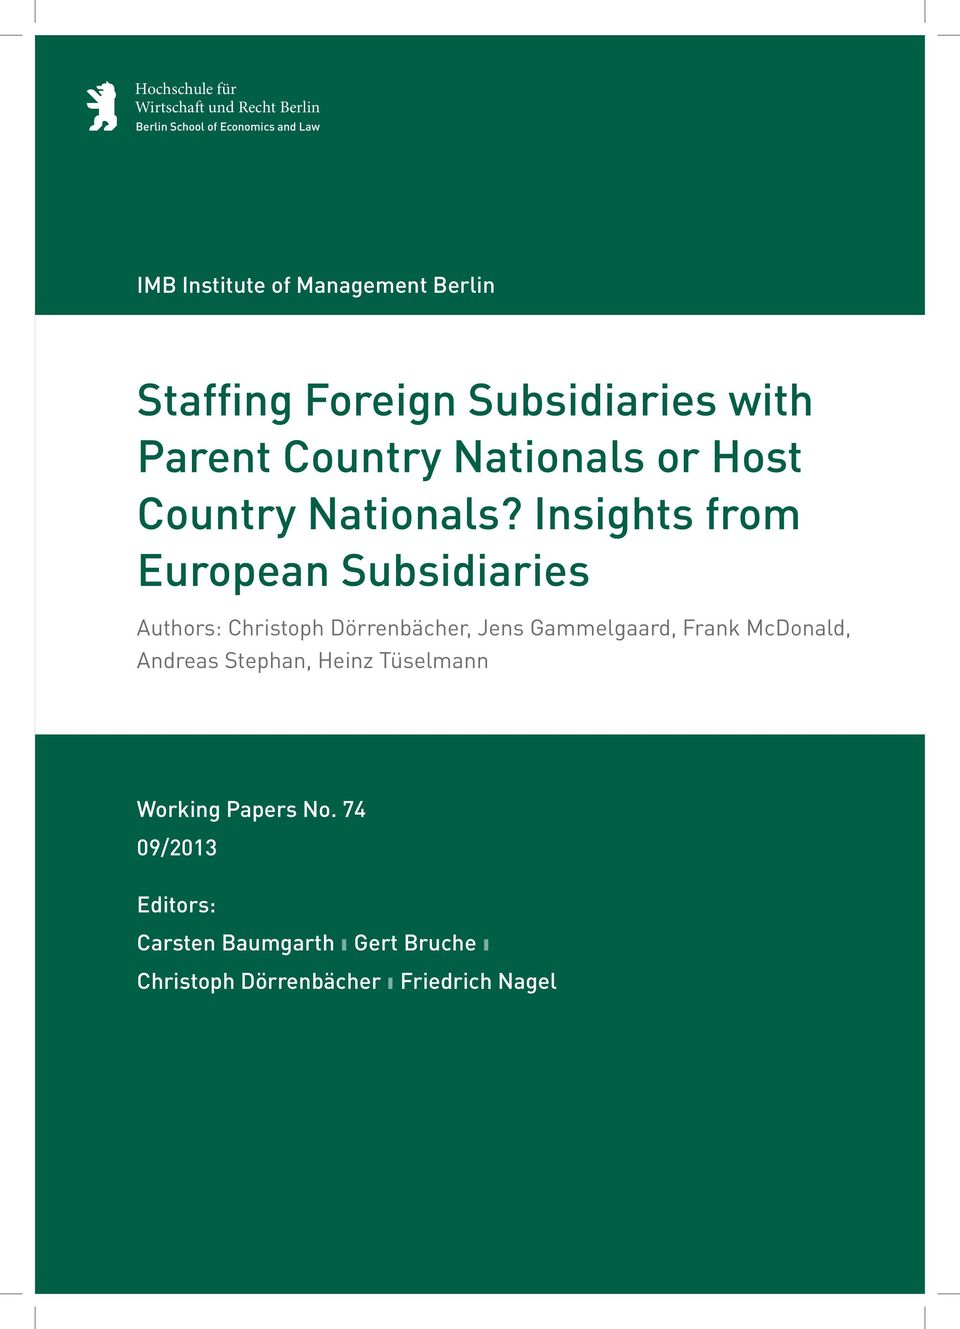 Insights from European Subsidiaries Authors: Christoph Dörrenbächer, Jens Gammelgaard, Frank McDonald, Andreas